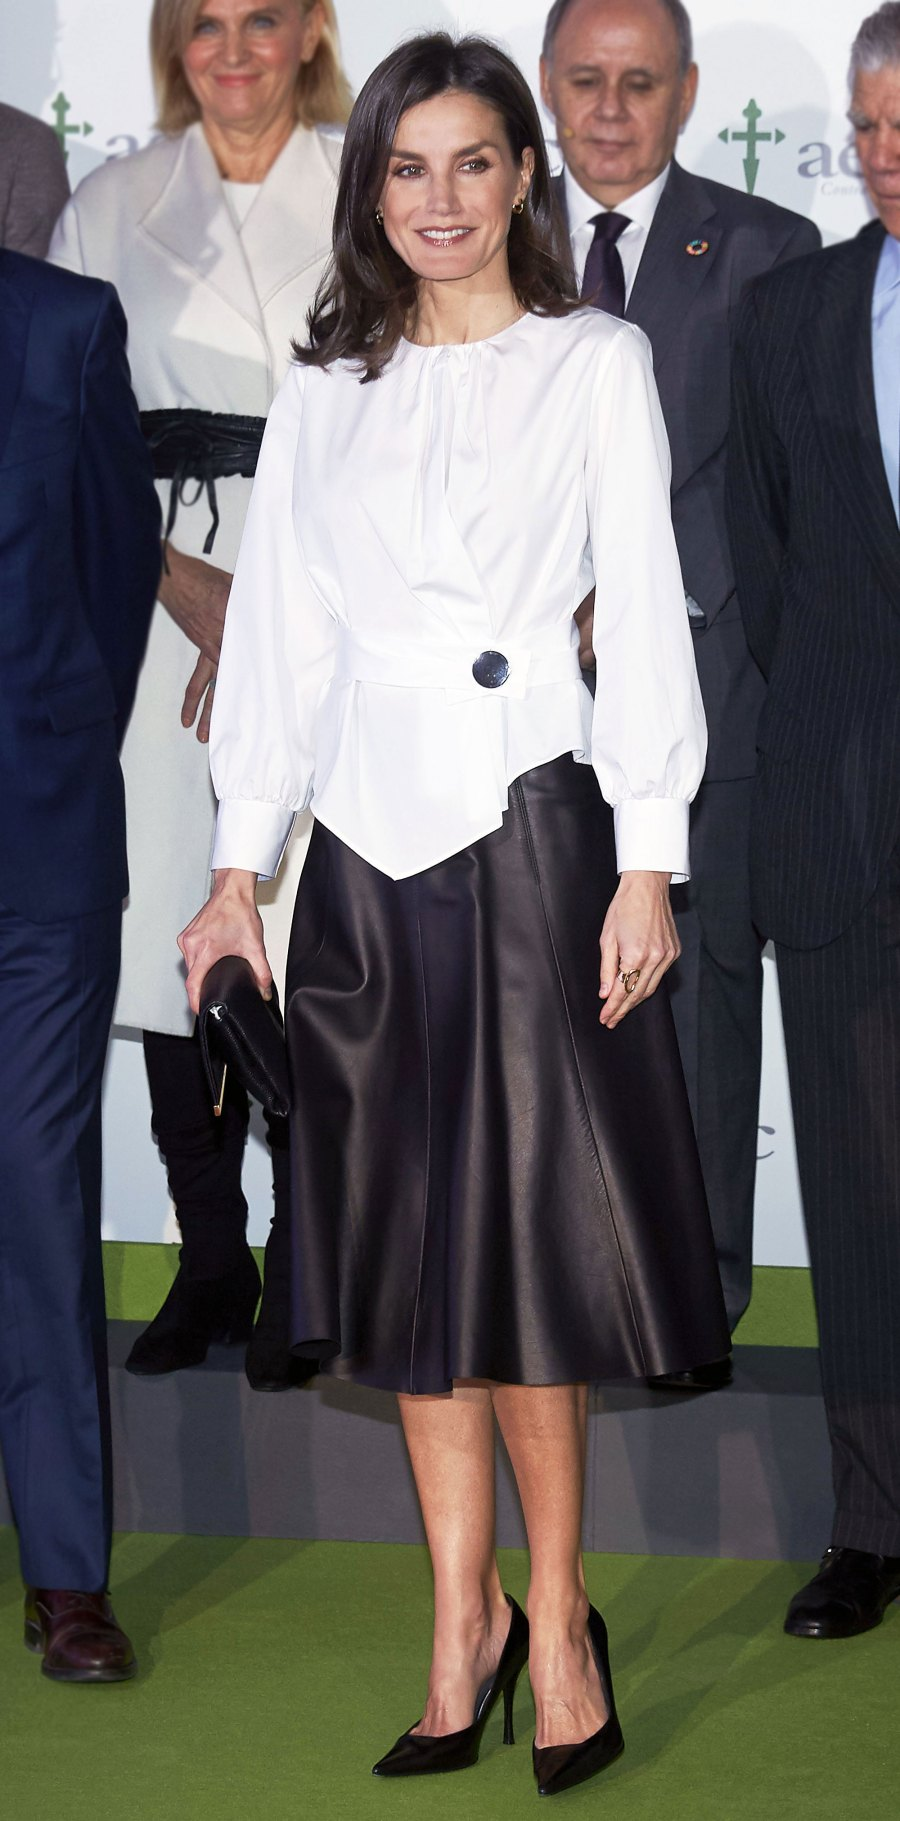 Queen Letizia Leather Skirt February 4, 2020